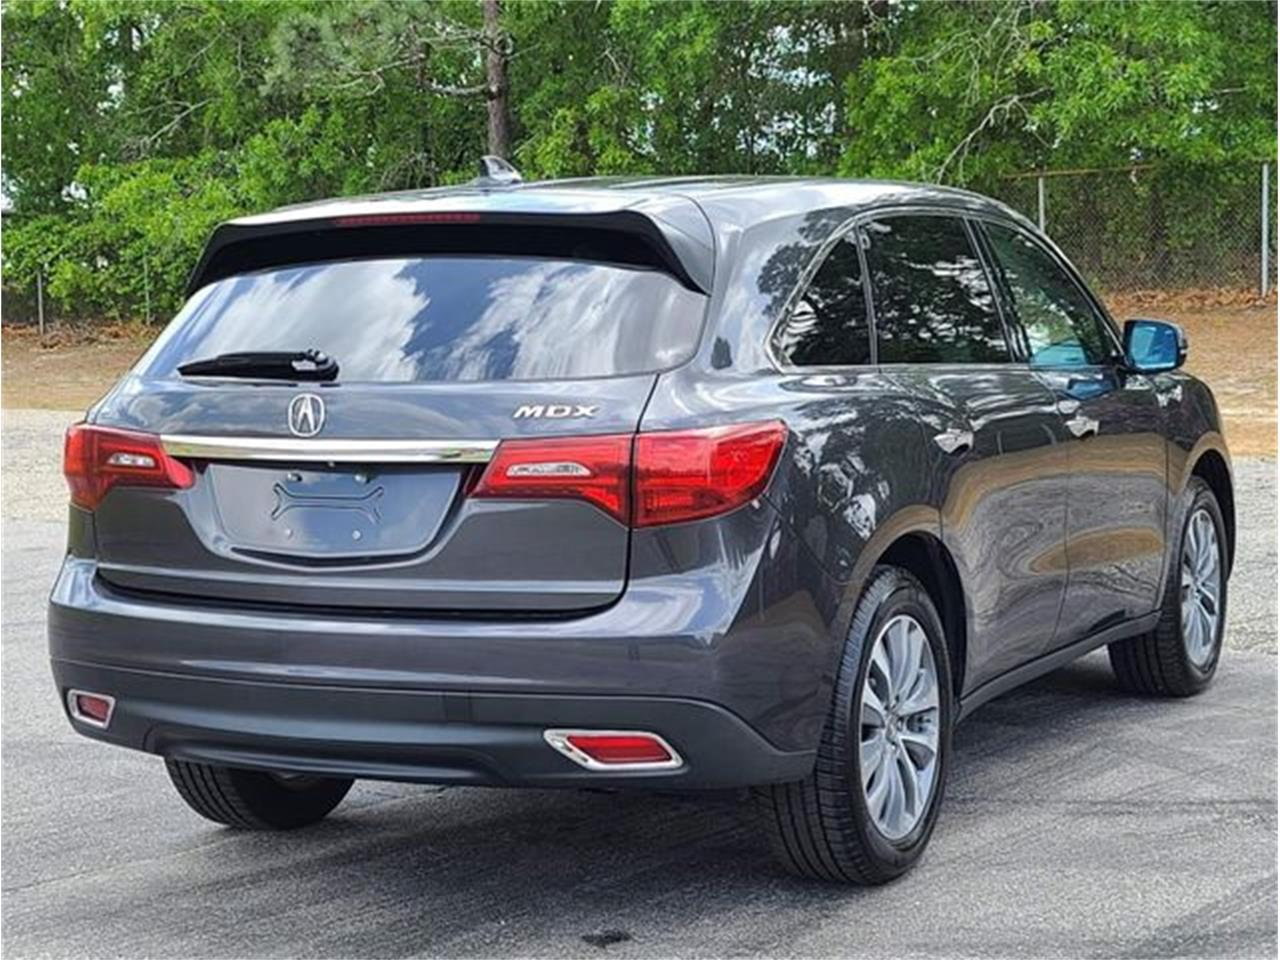 2014 Acura MDX (CC-1343965) for sale in Hope Mills, North Carolina